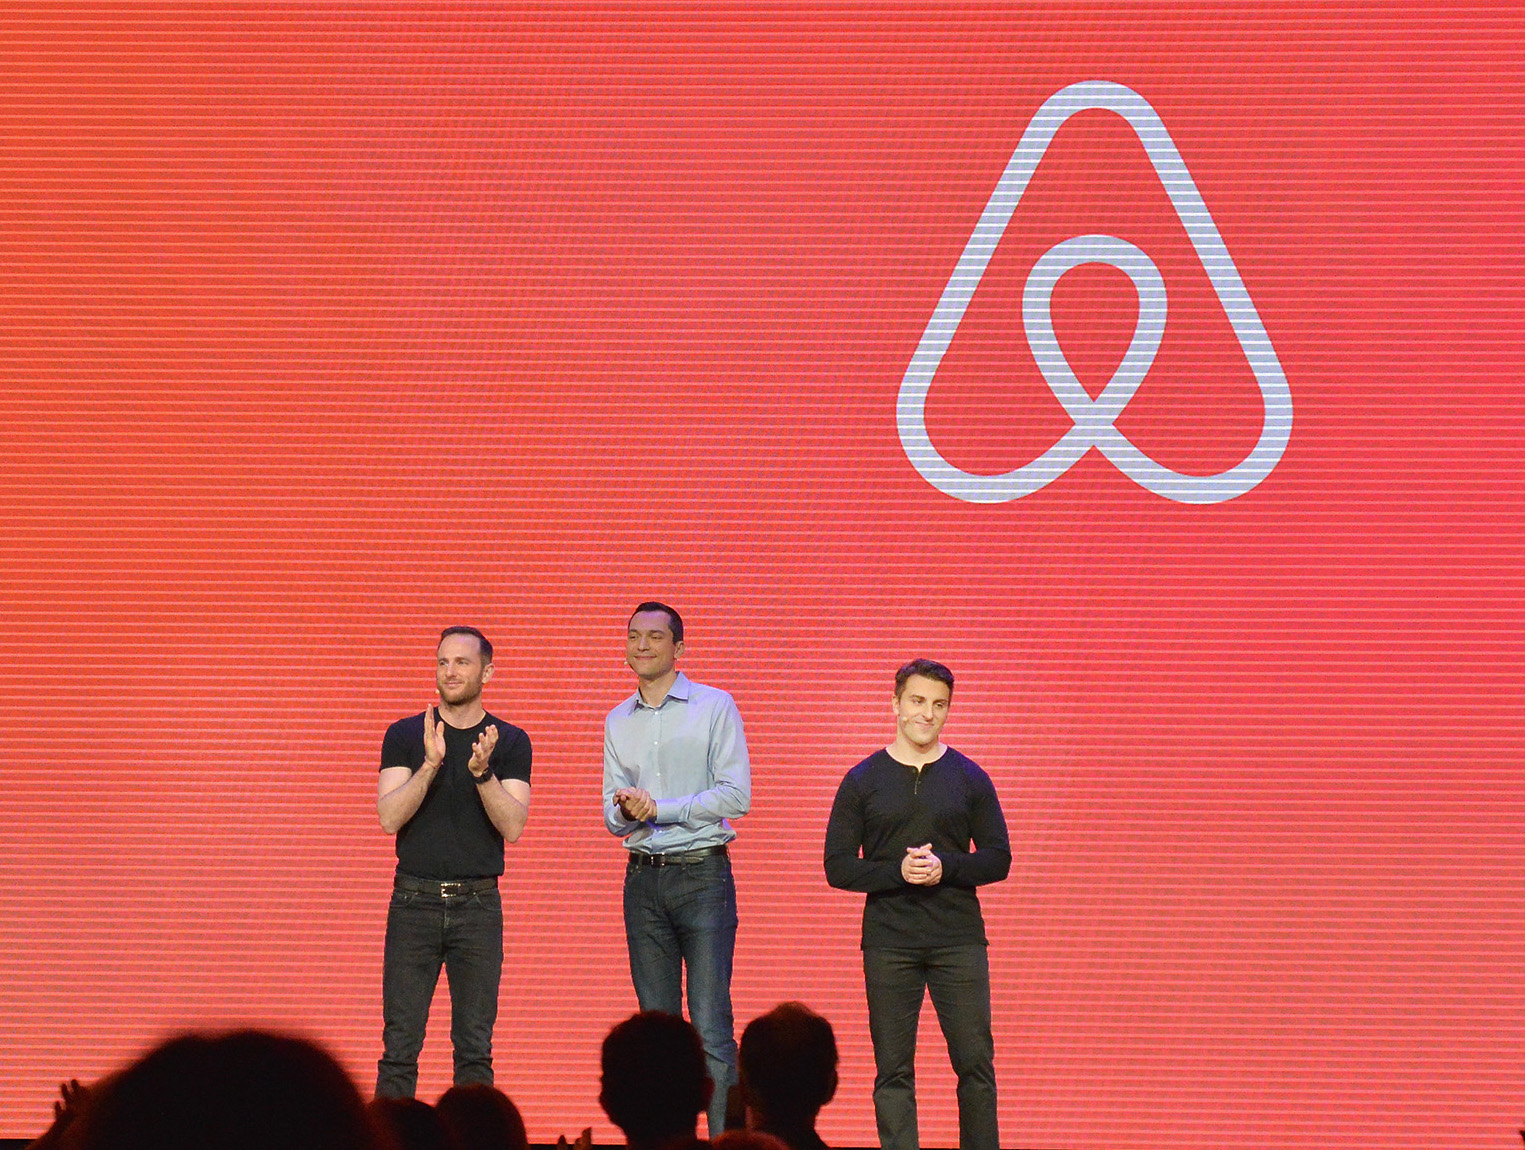 Joe Gebbia, Nathan Blecharczyk and Brian Chesky are the co-founders of Airbnb.